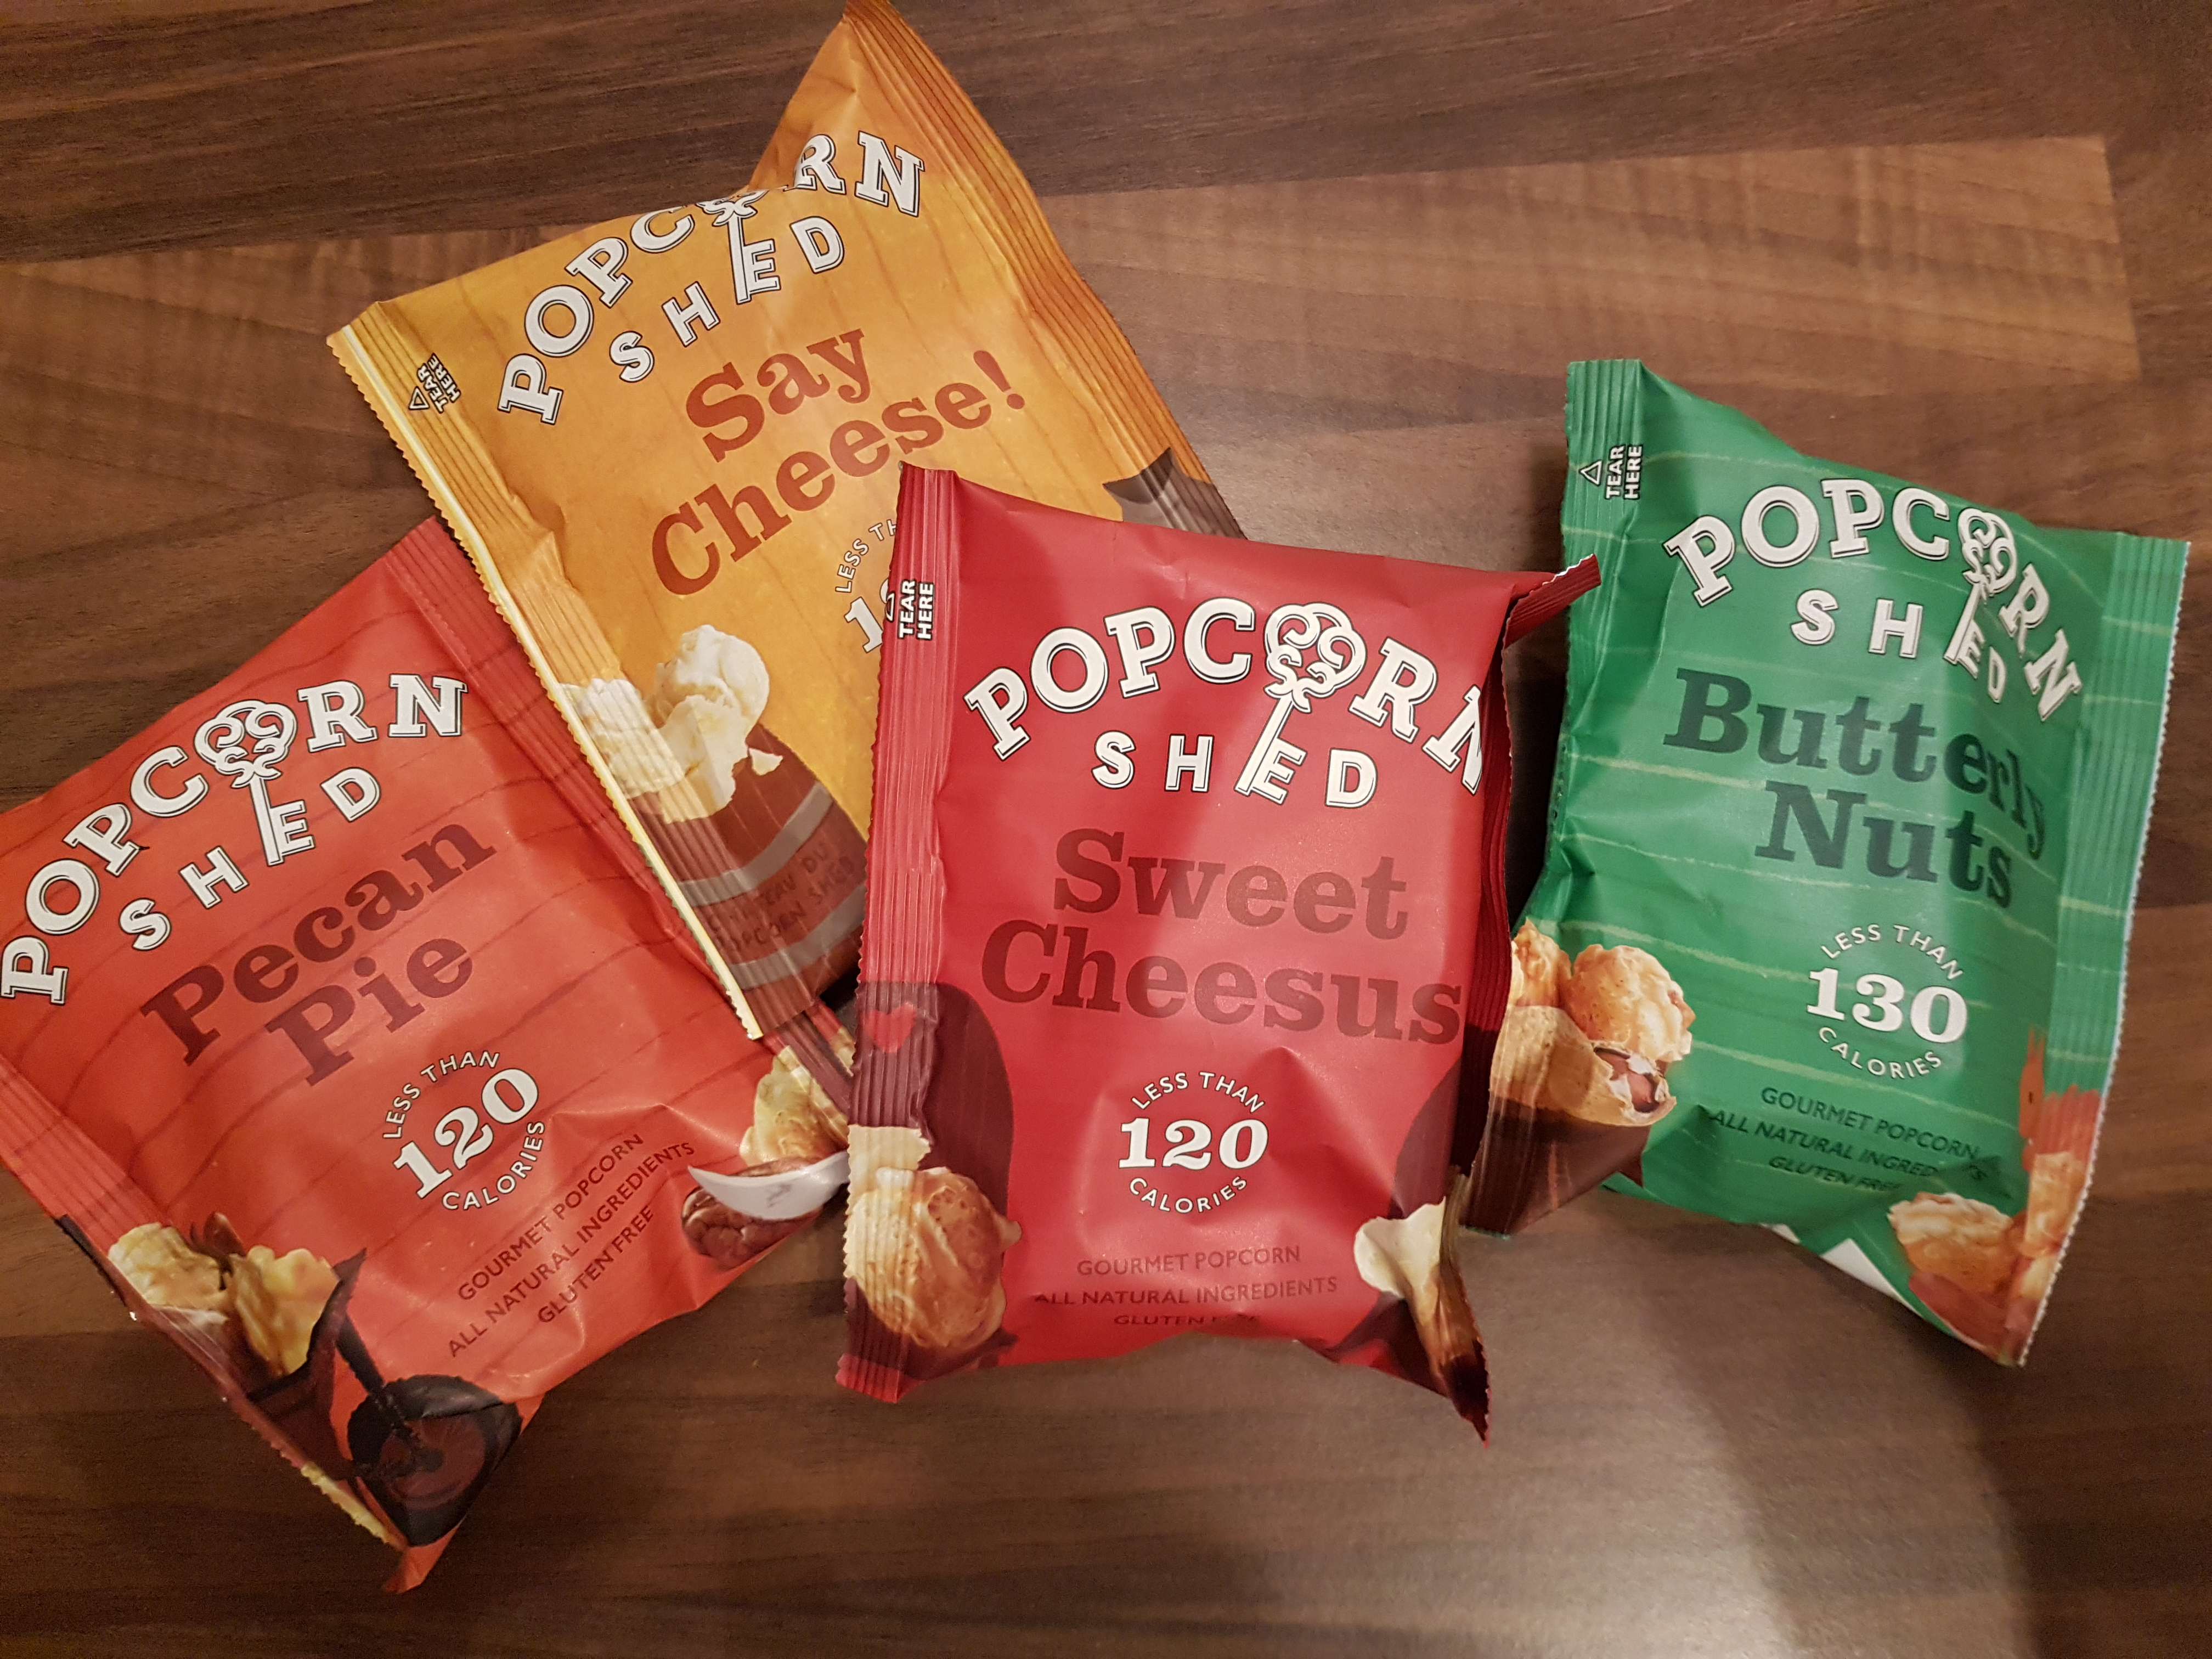 Popcorn Shed gourmet popcorn, available in snack bags of 24g